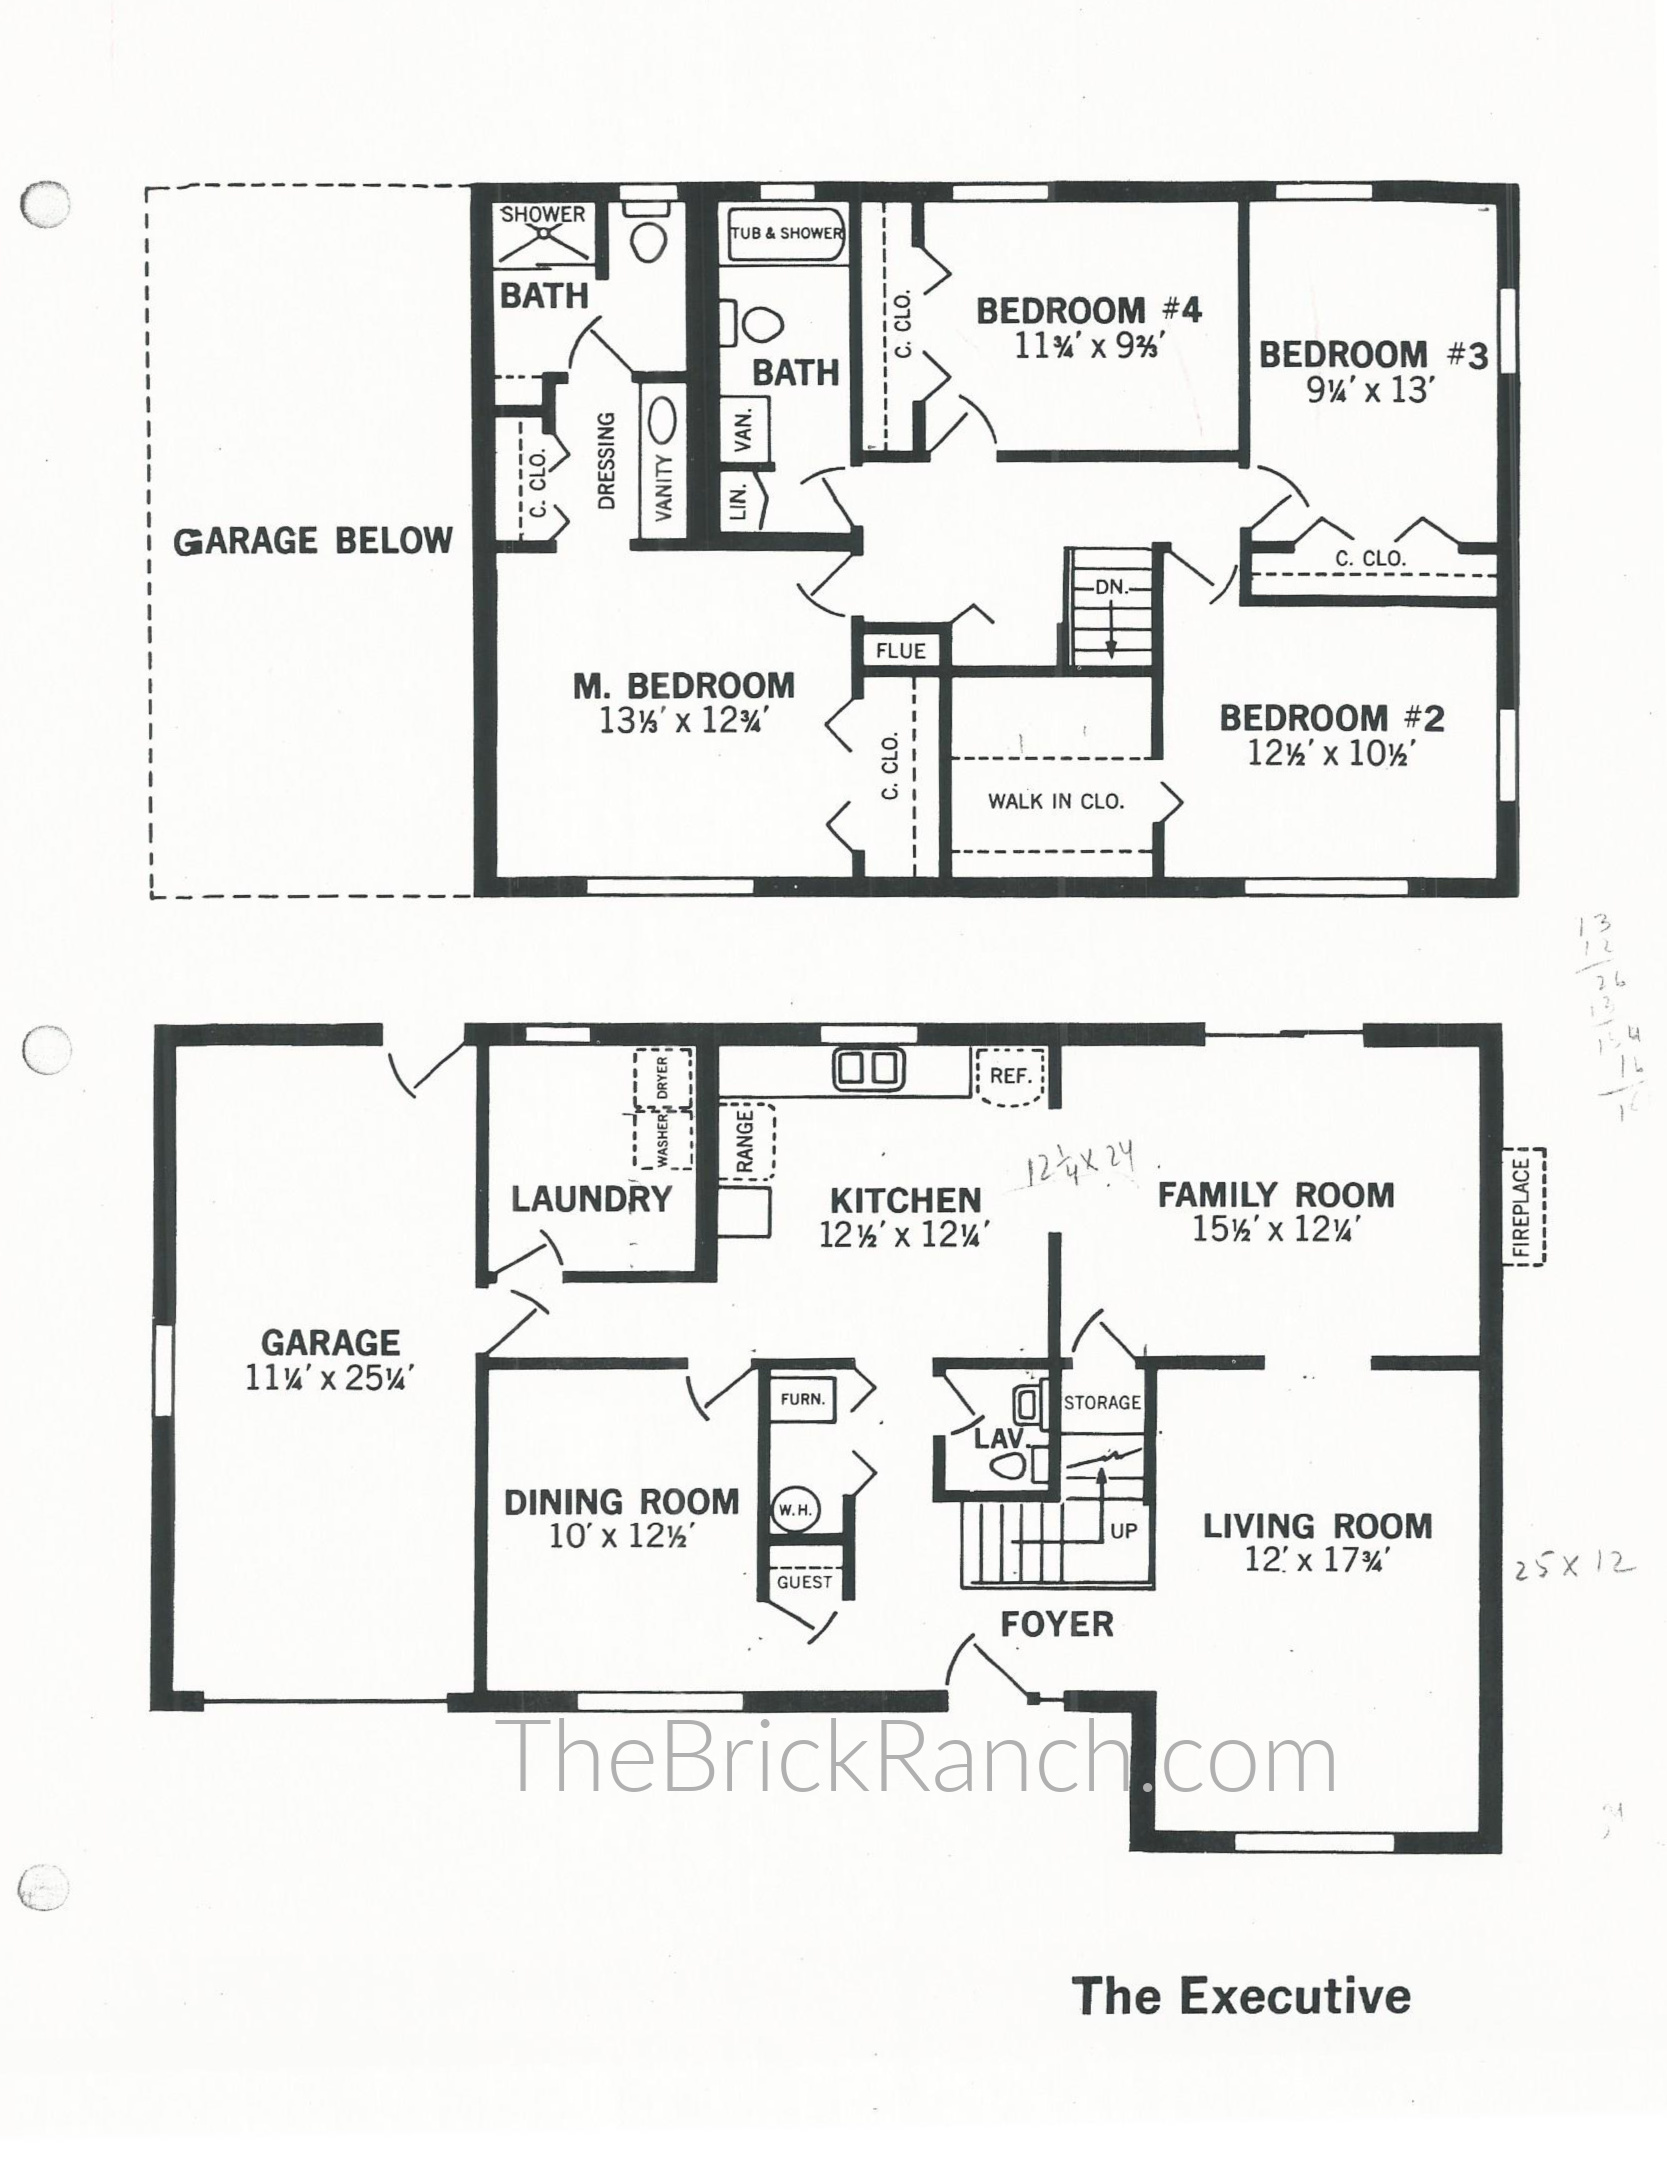 Huber Home Floor Plans: The Executive